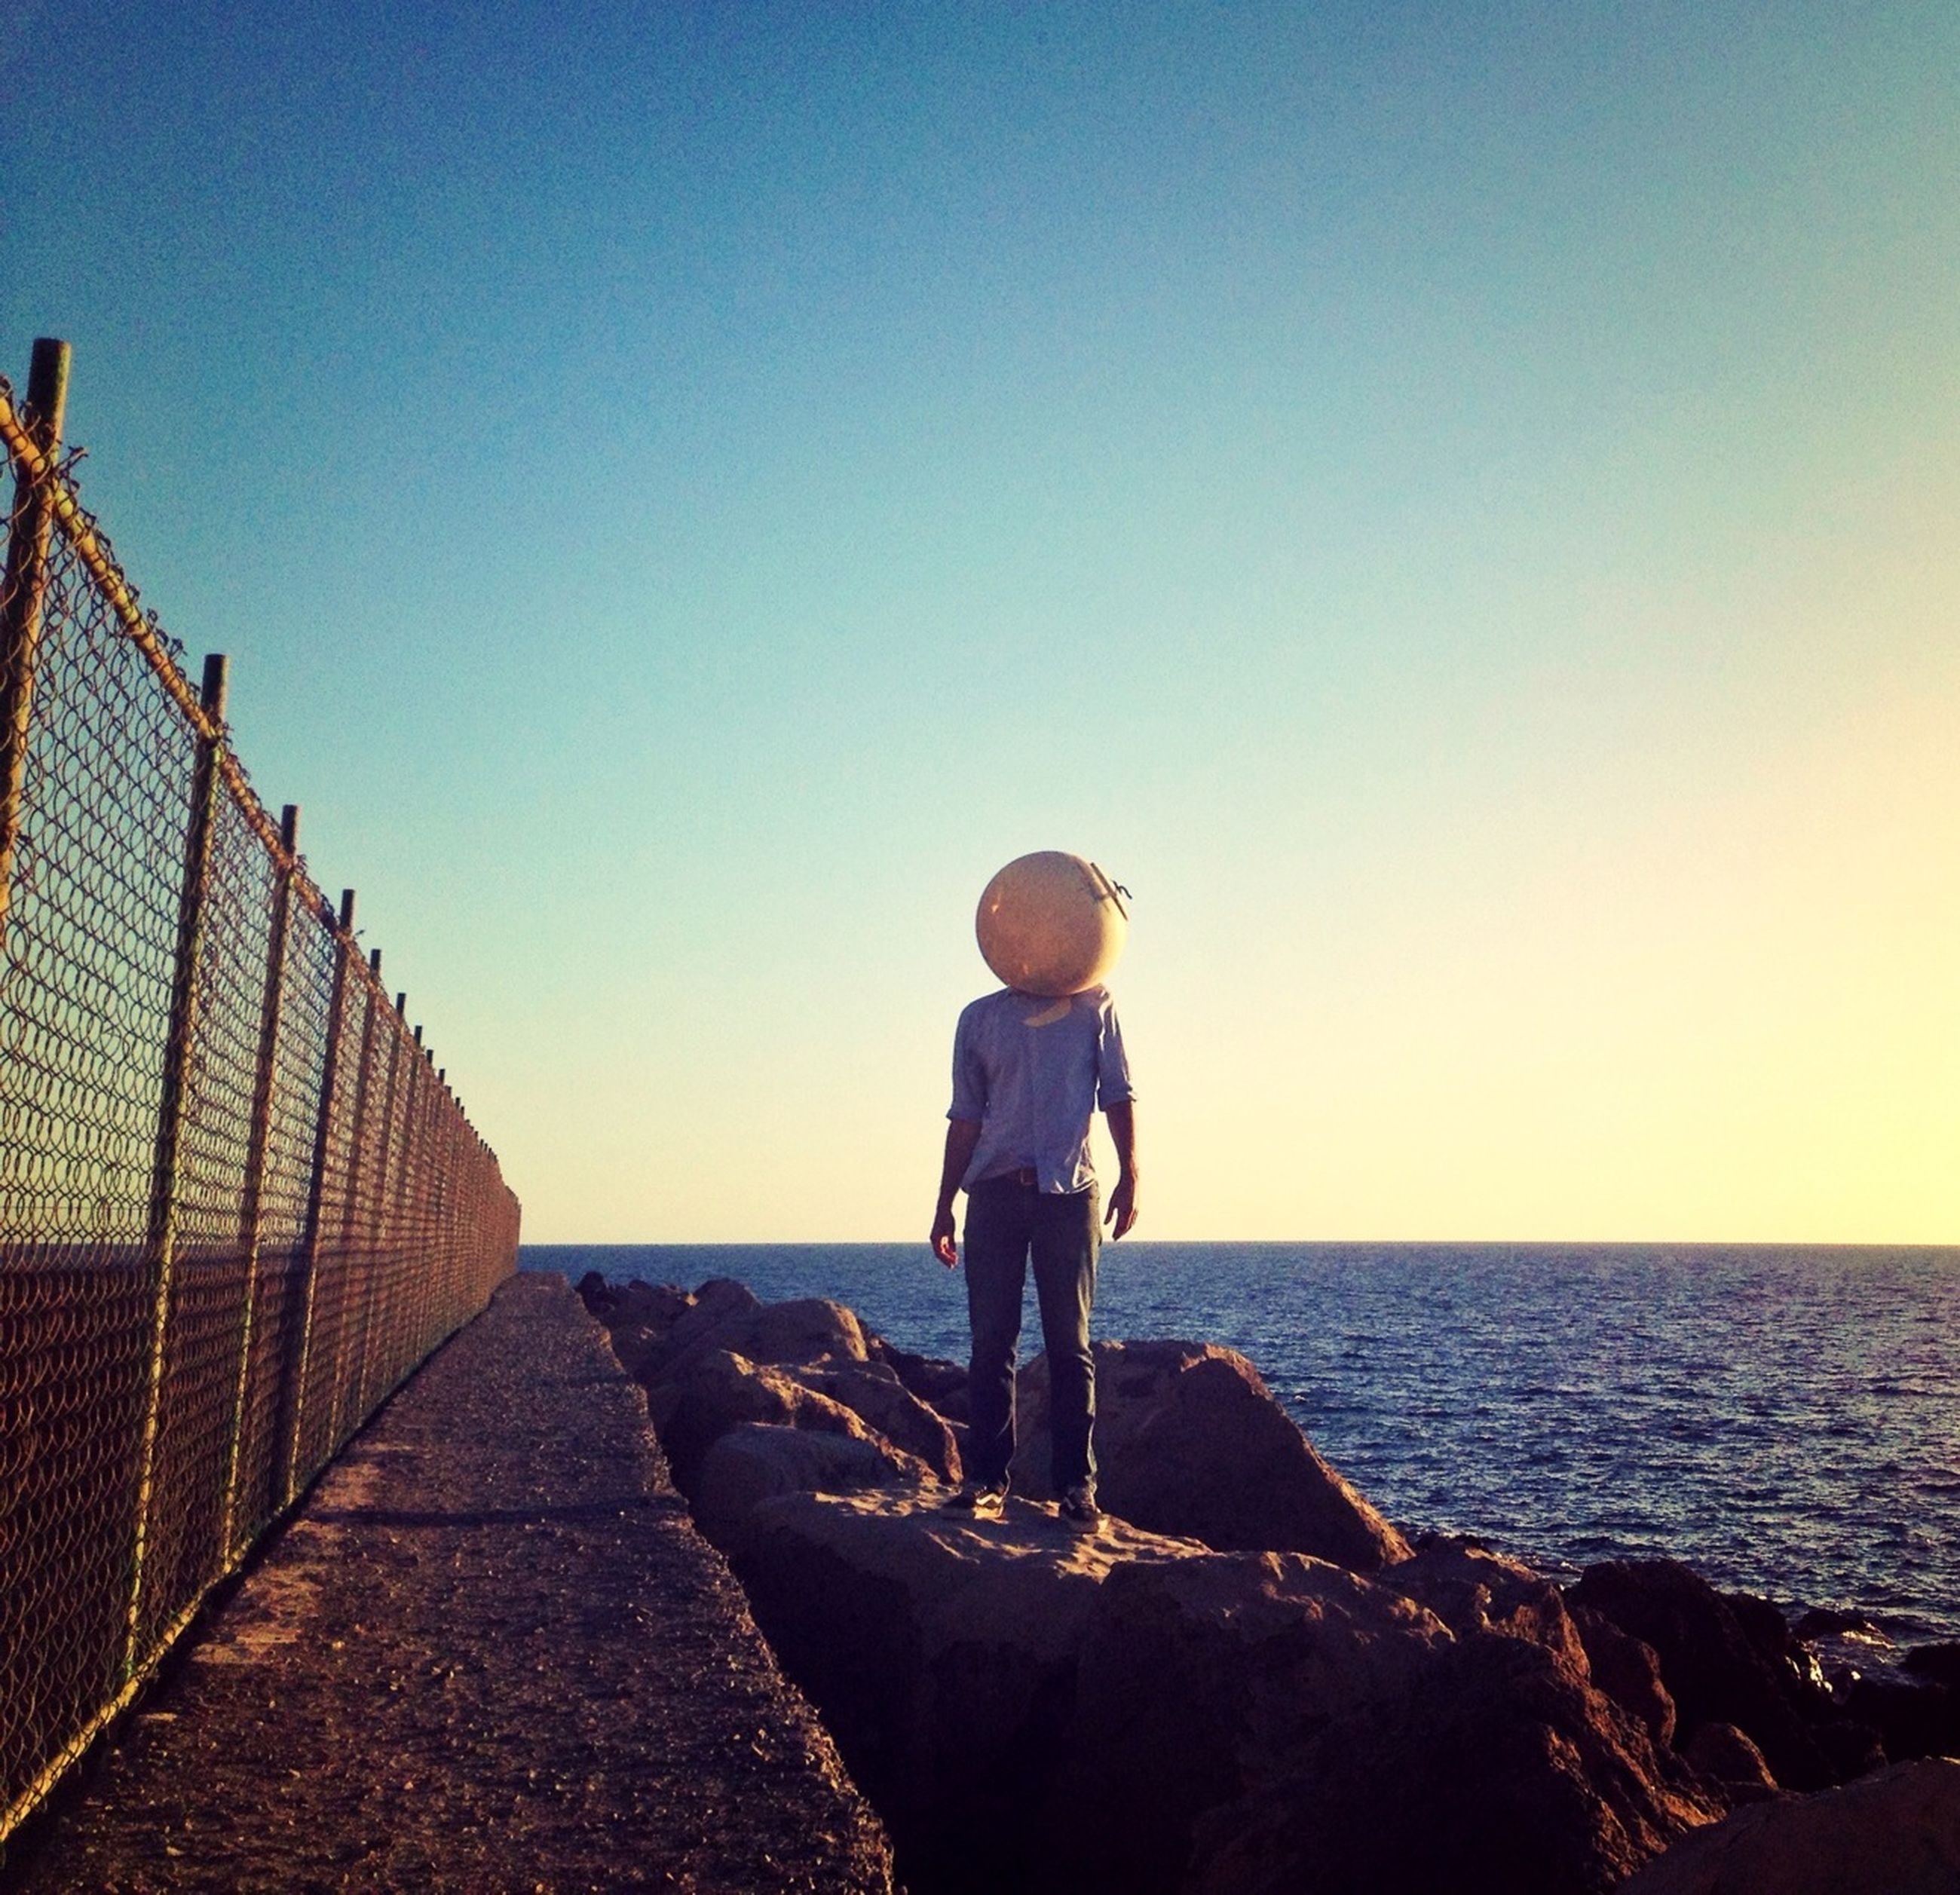 sea, water, horizon over water, clear sky, rear view, full length, copy space, standing, lifestyles, leisure activity, beach, casual clothing, blue, sky, shore, person, built structure, nature